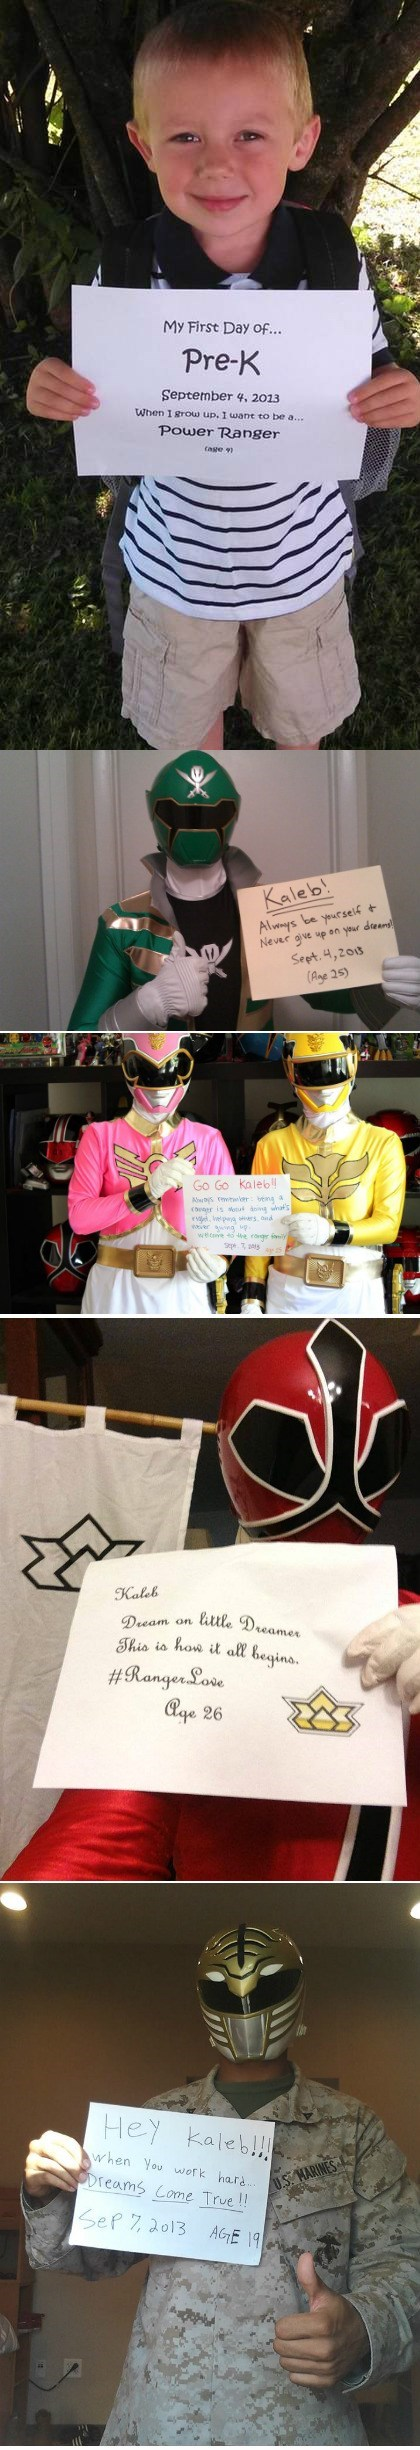 power rangers,random act of kindness,Follow Your Dreams,funny,g rated,win